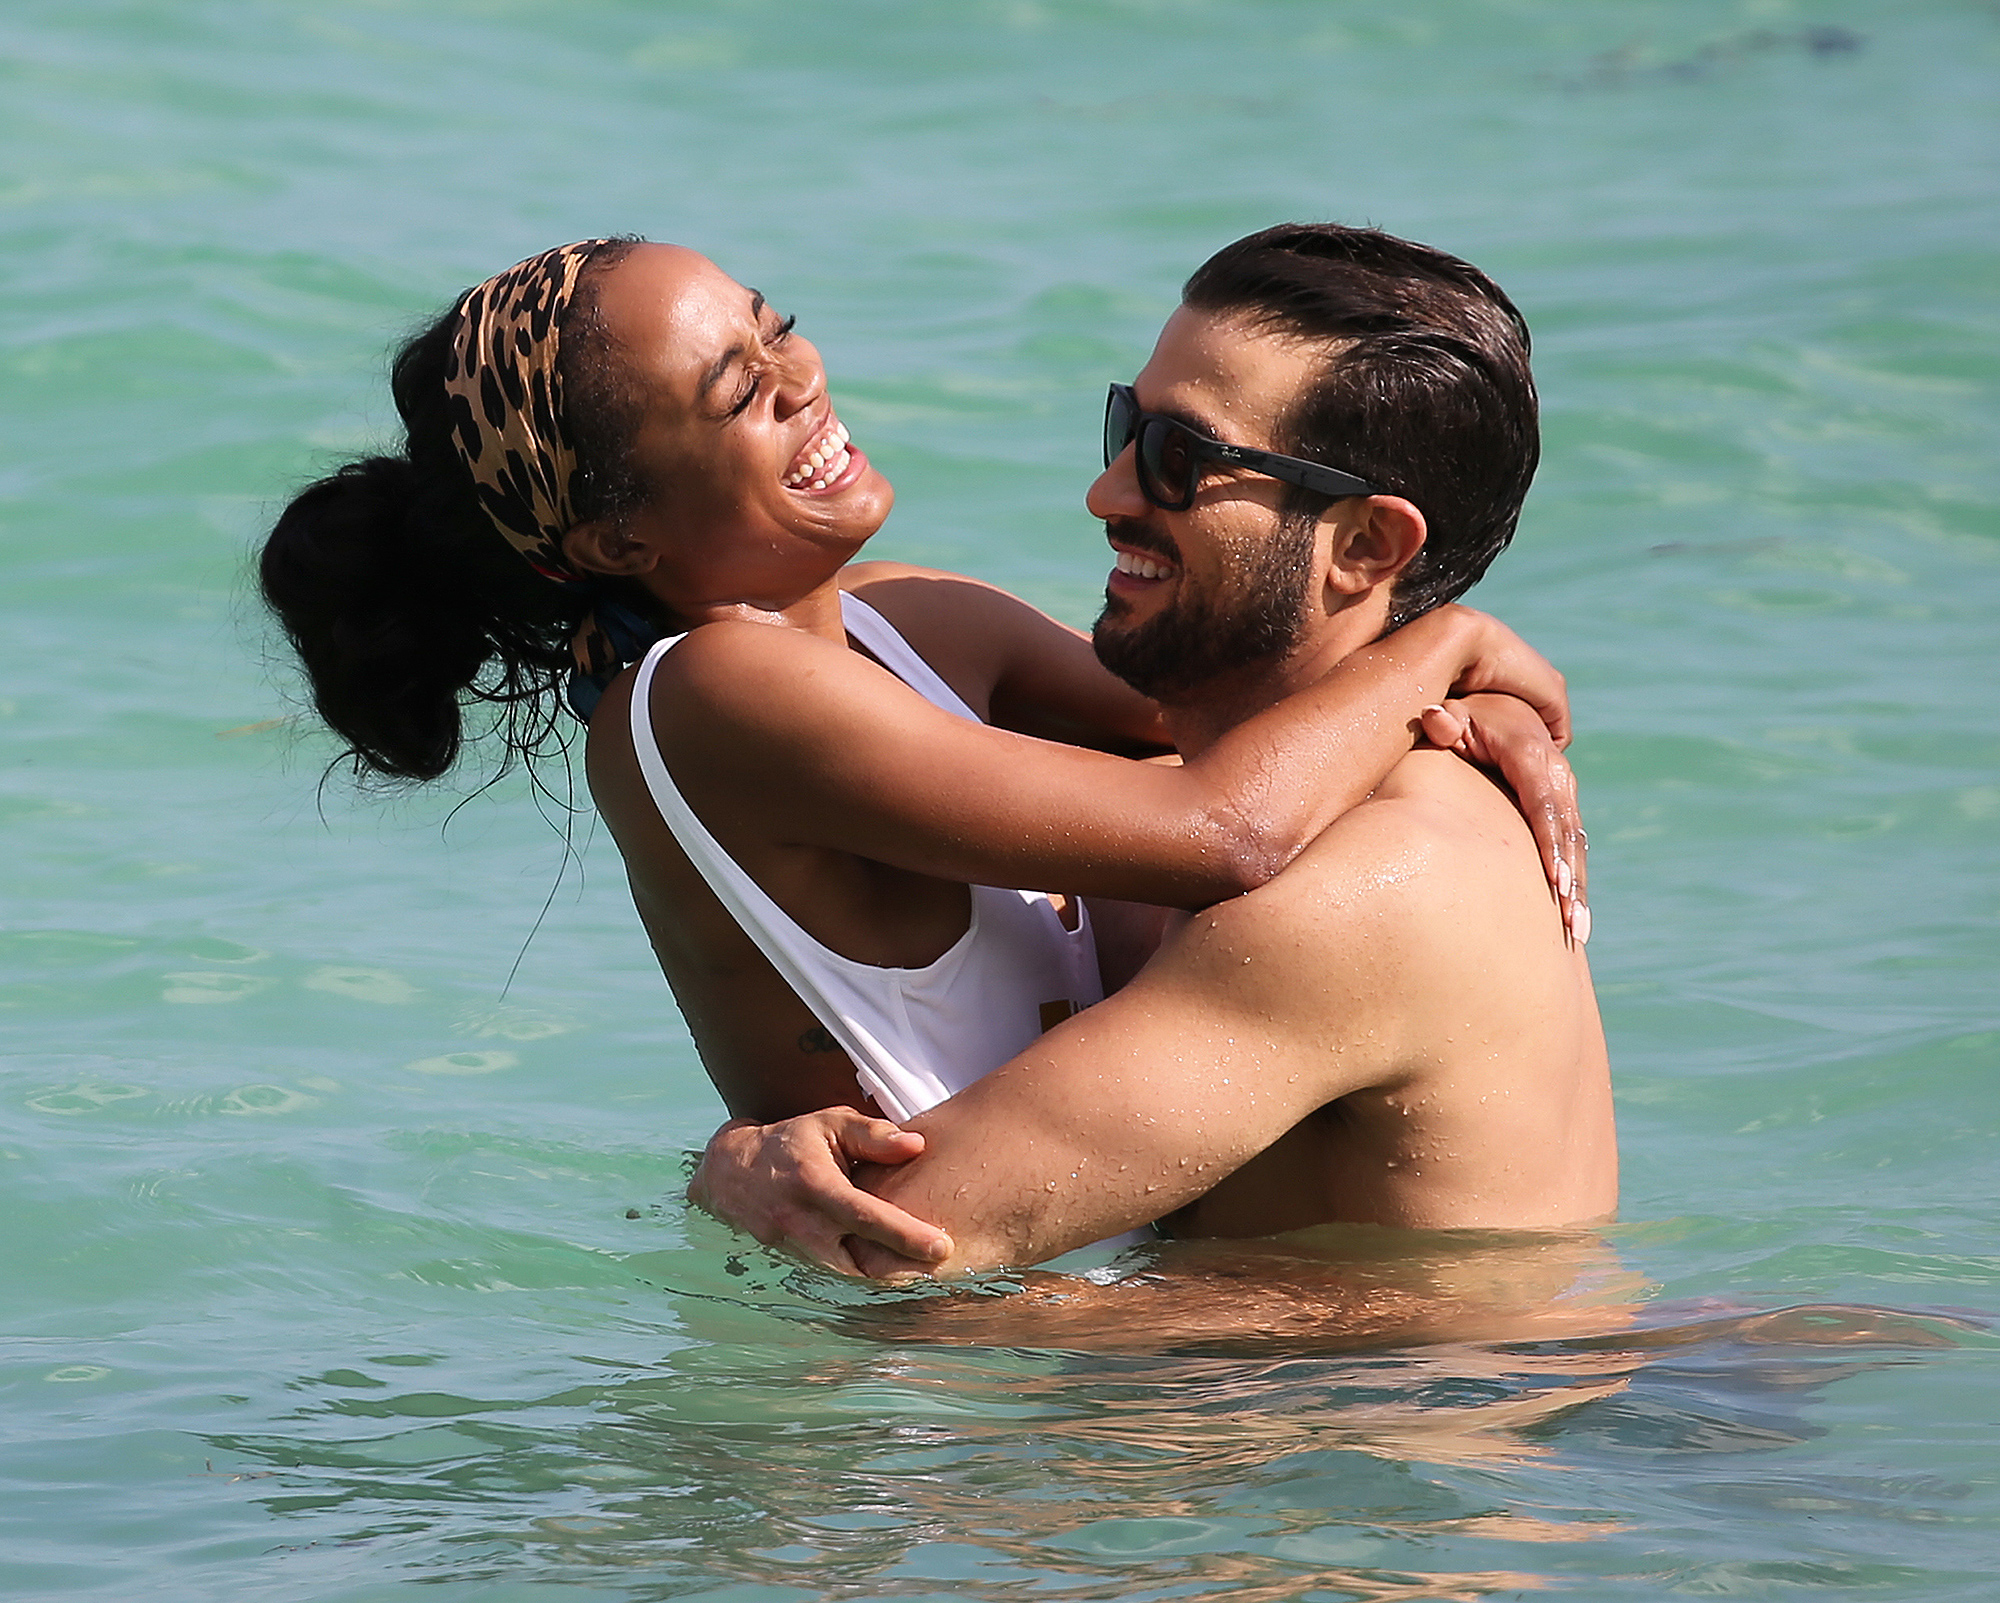 Bachelorette star Rachel Lindsay and finance Brian Abosolo show off their beach bodies and a lot of PDA as they take a dip in the ocean in Miami